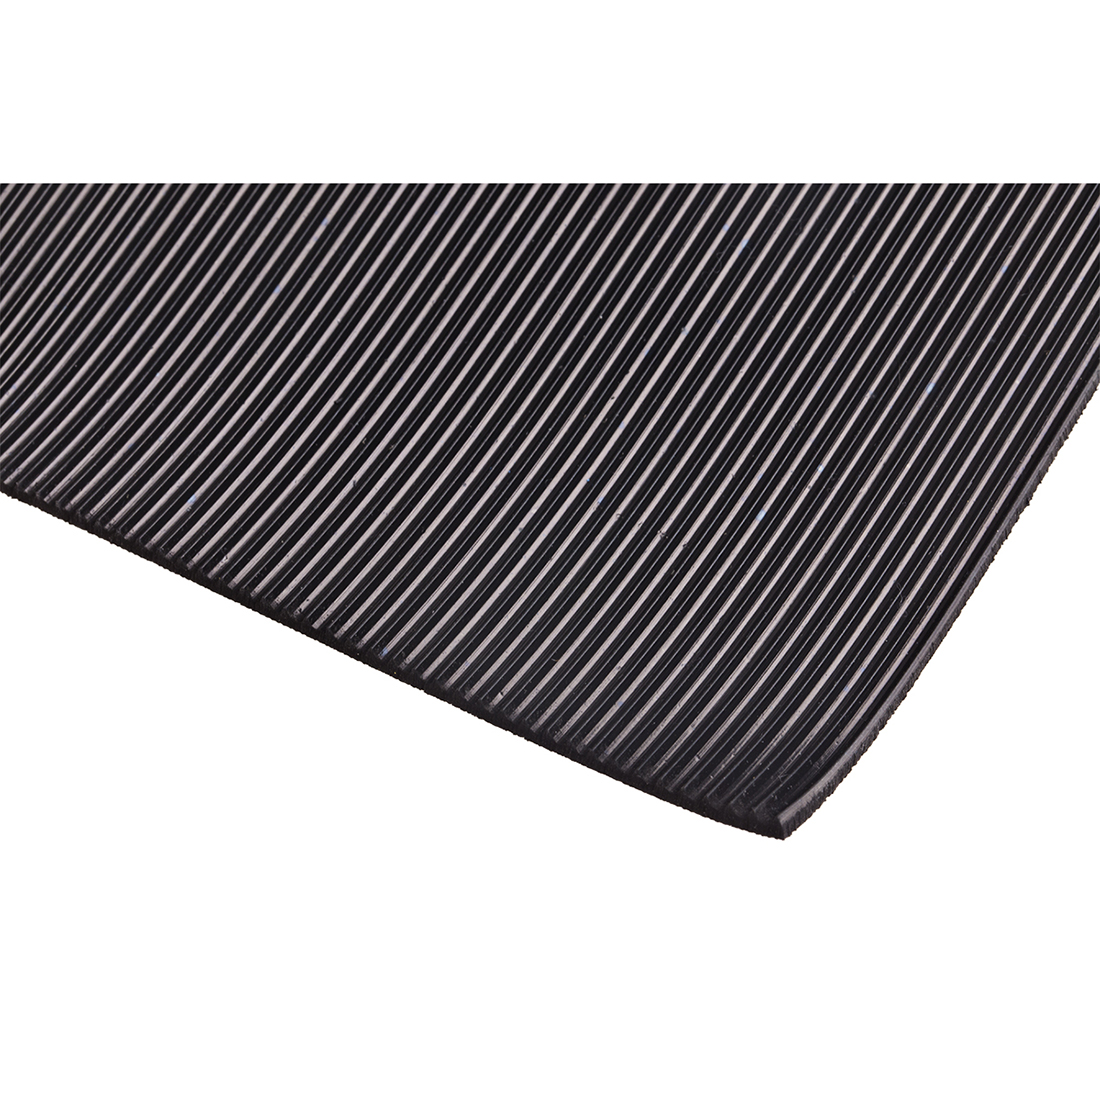 RS PRO Black Rubber Mat, L668mm x W515mm